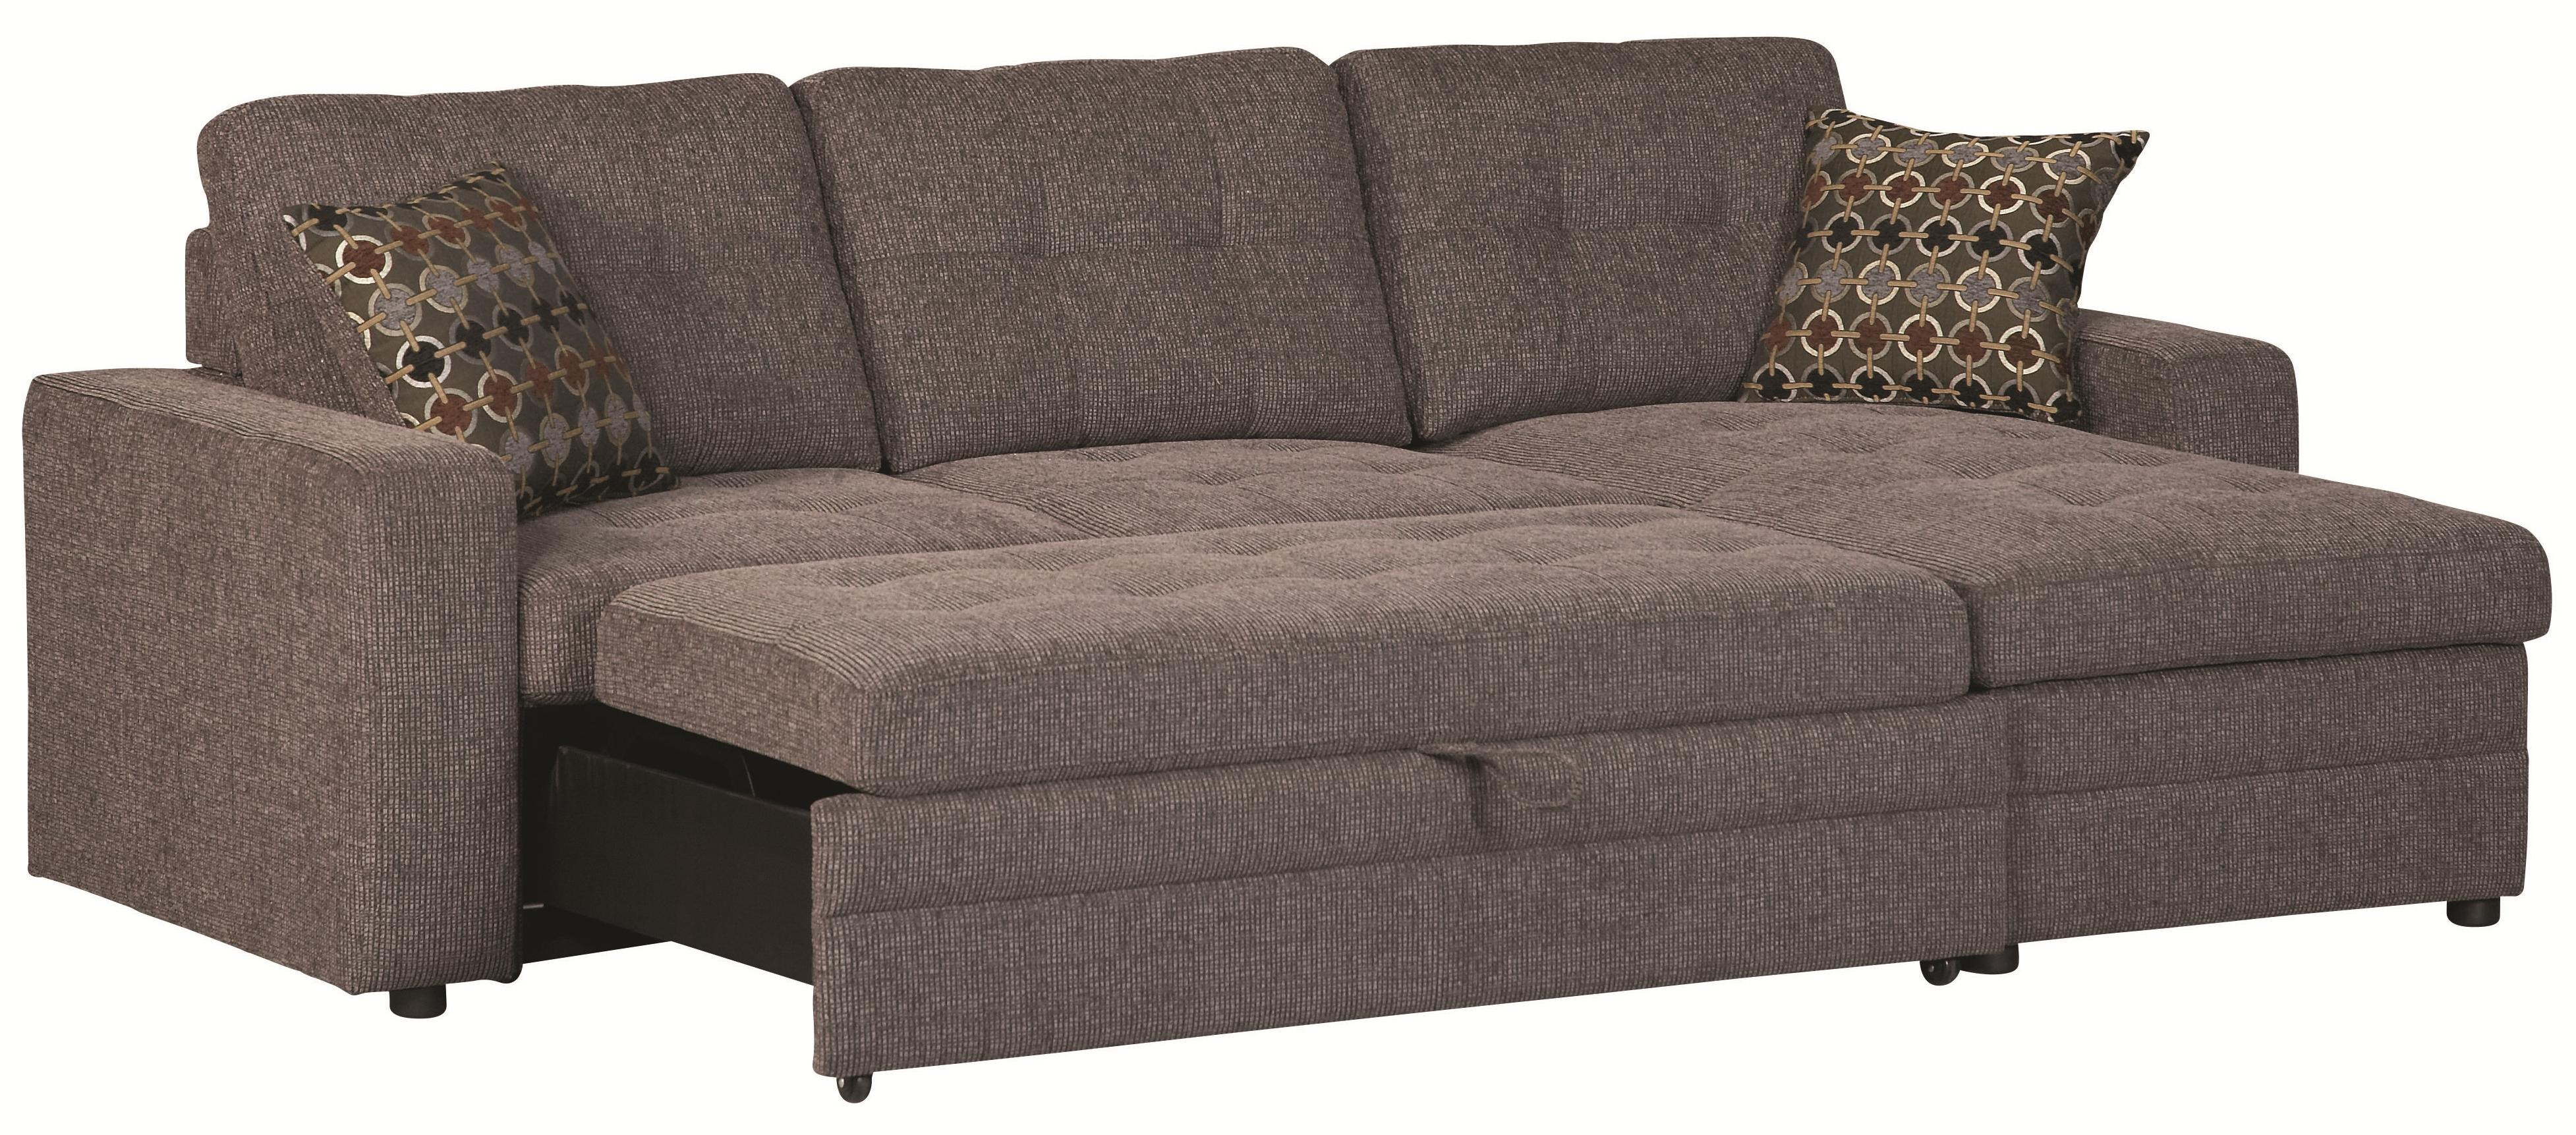 Coaster gus 501677 sectional sofa with tufts storage and for Gus sectional sofa with tufts storage and pull out bed